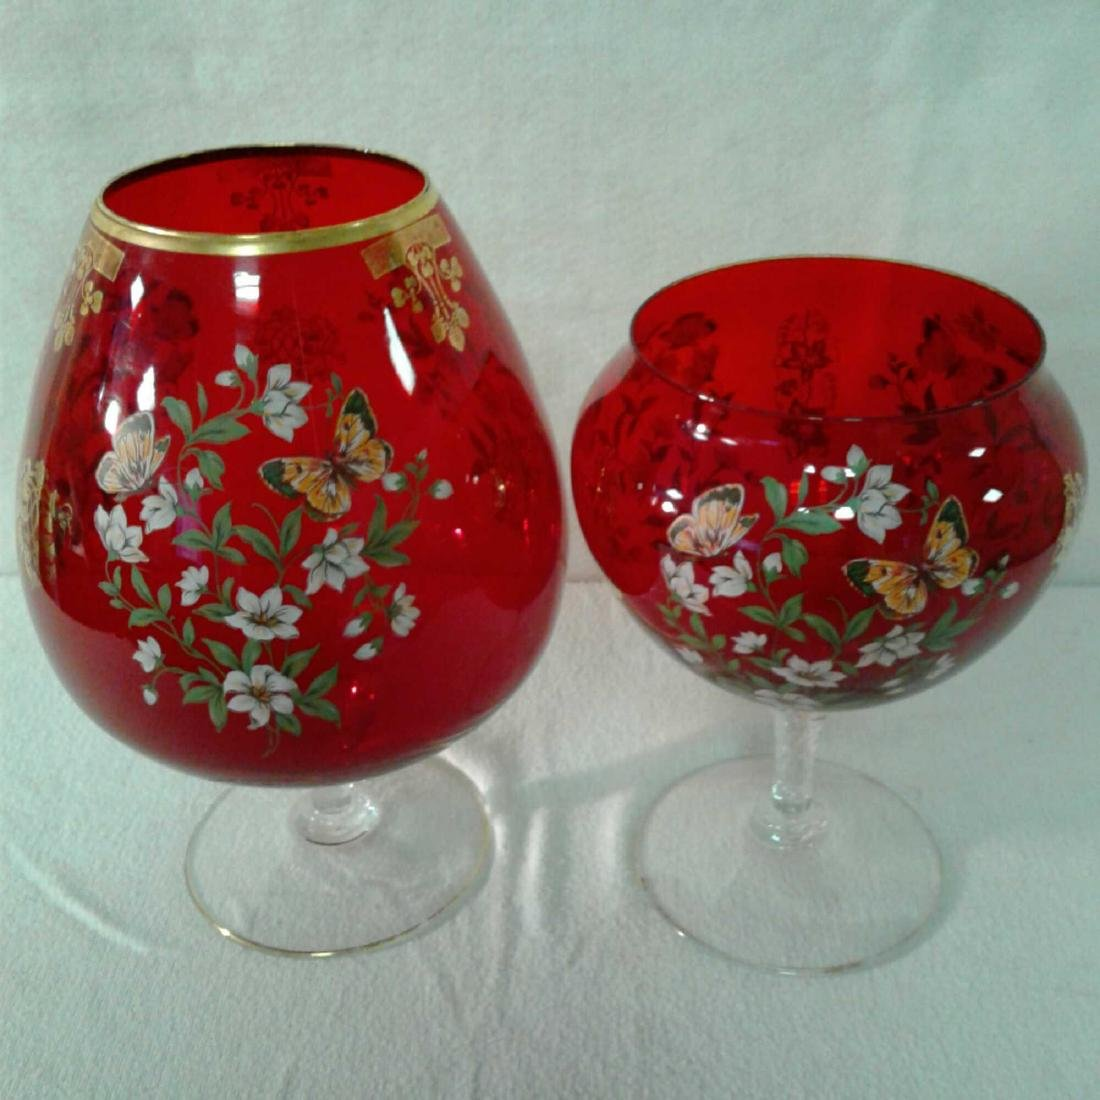 2 Large Red Wine Glass Shaped Vases